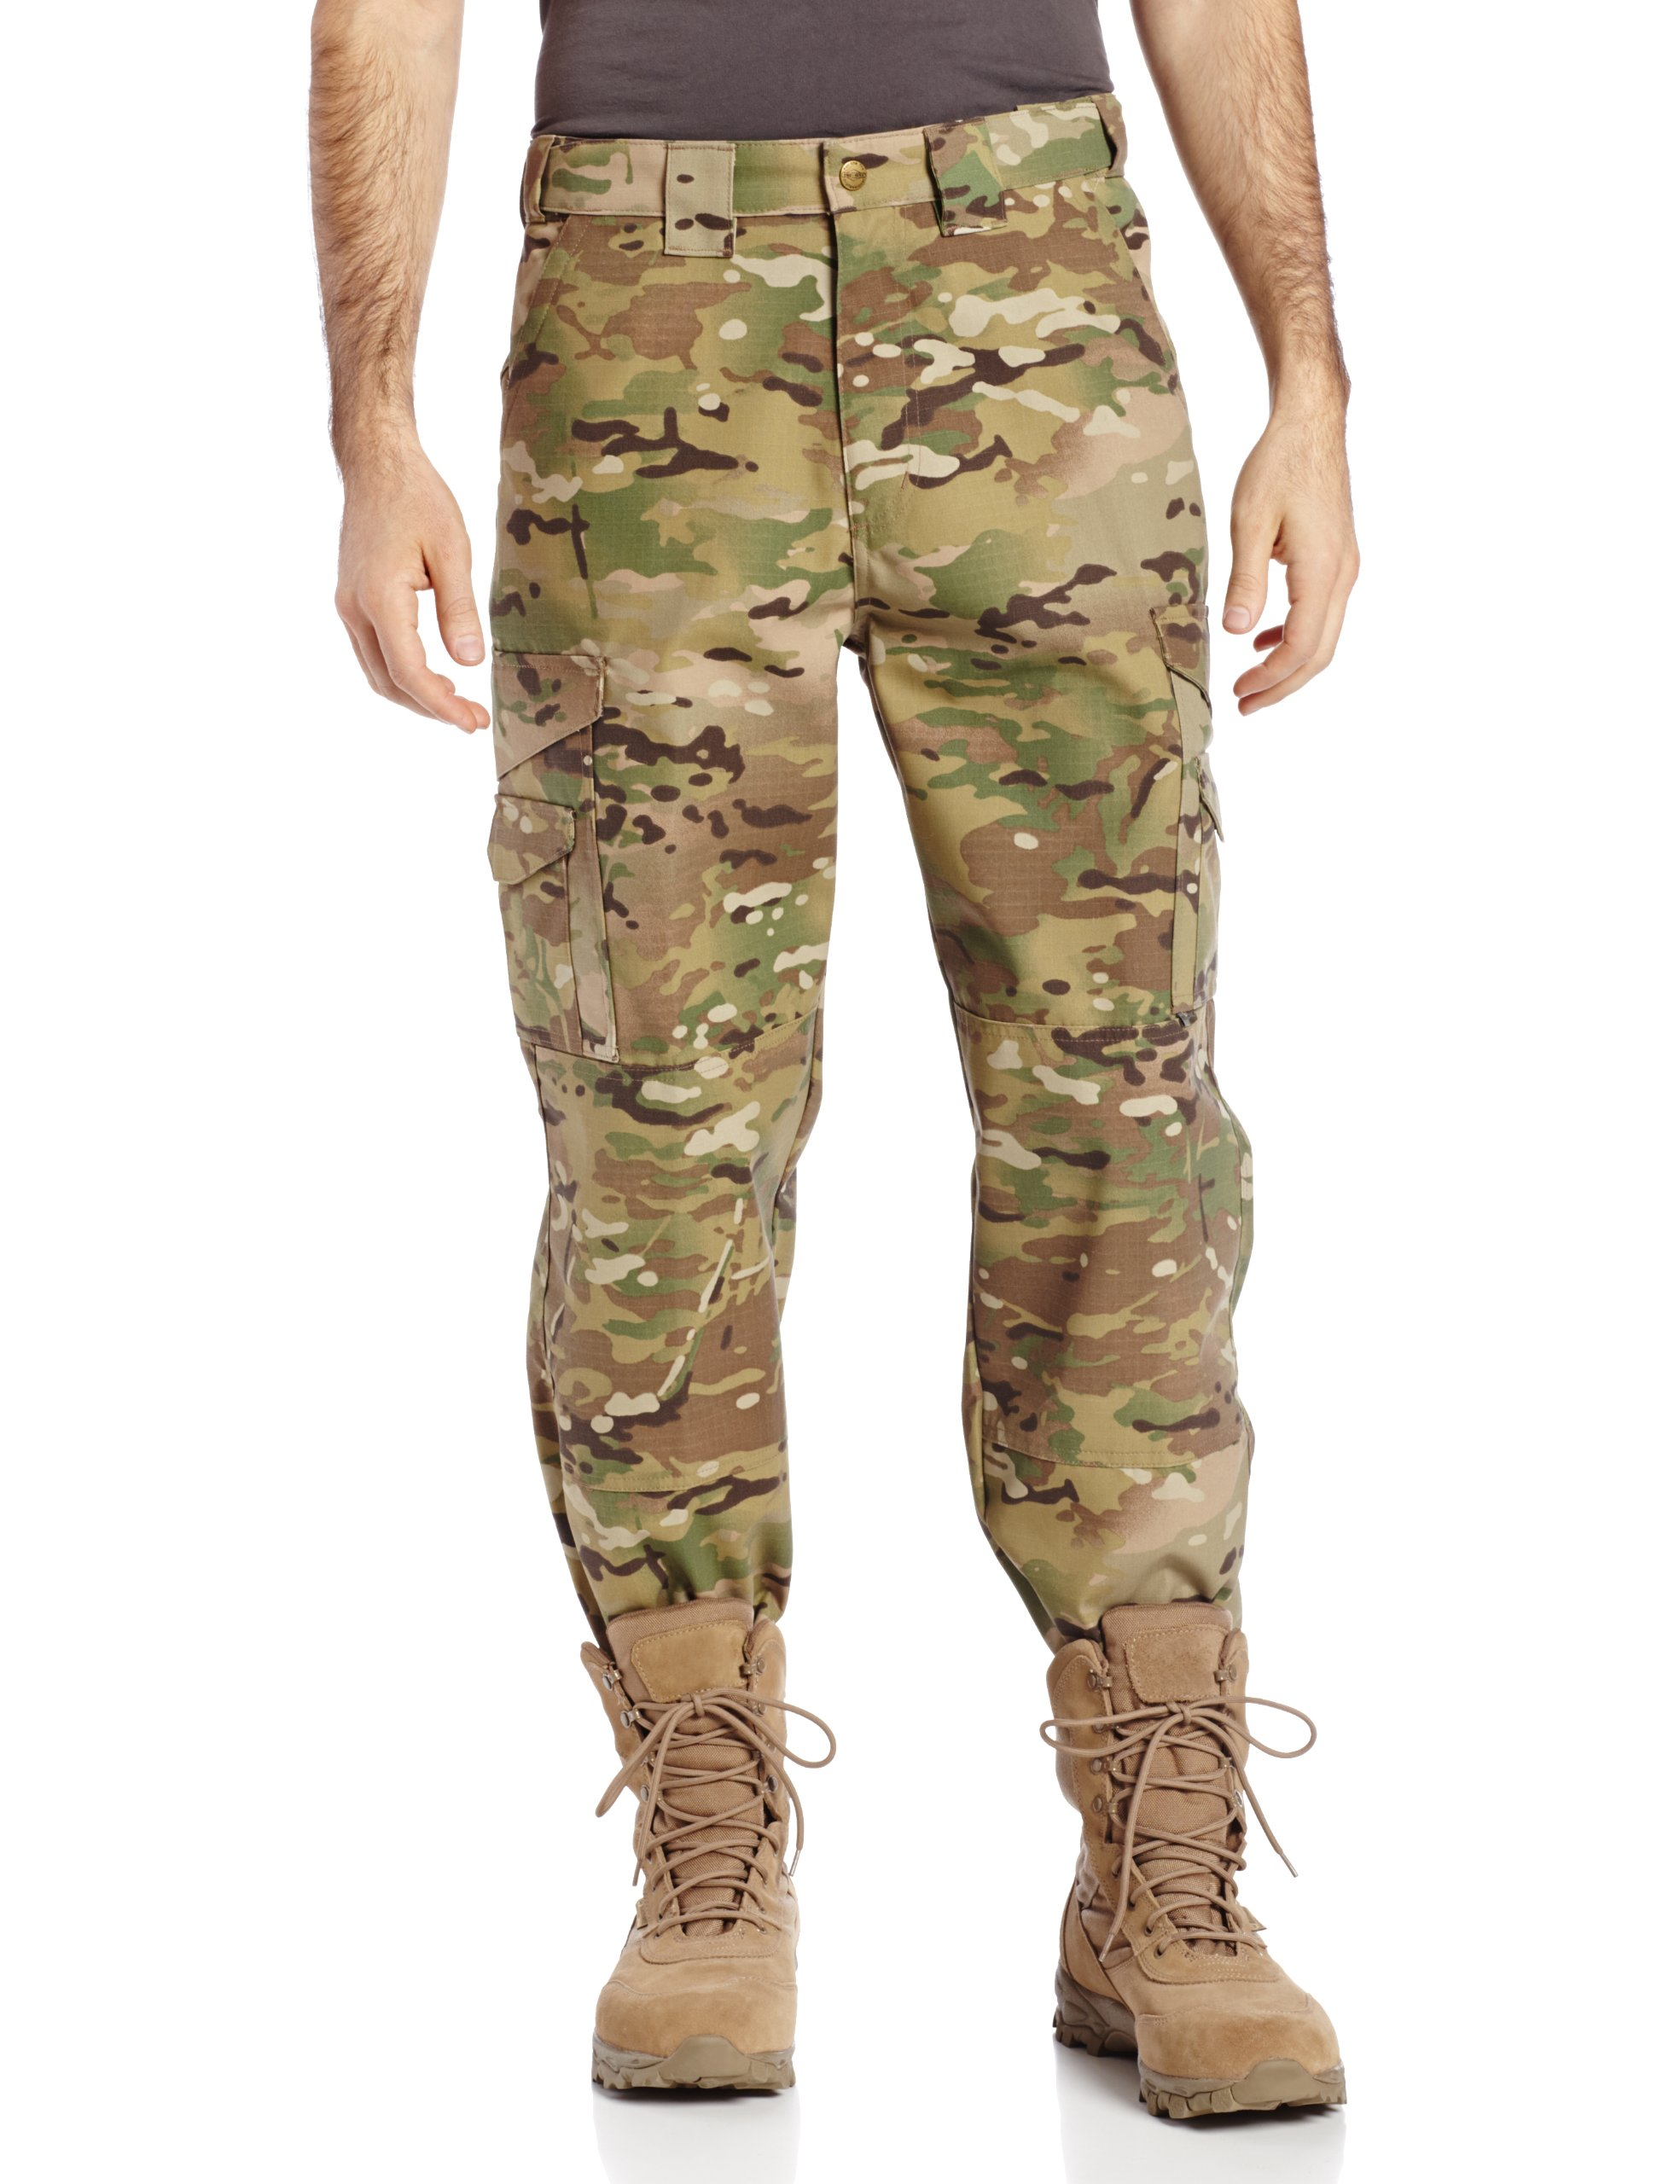 TRU-SPEC Men's 24/7 Tactical Pants, MultiCam, 36 X 32